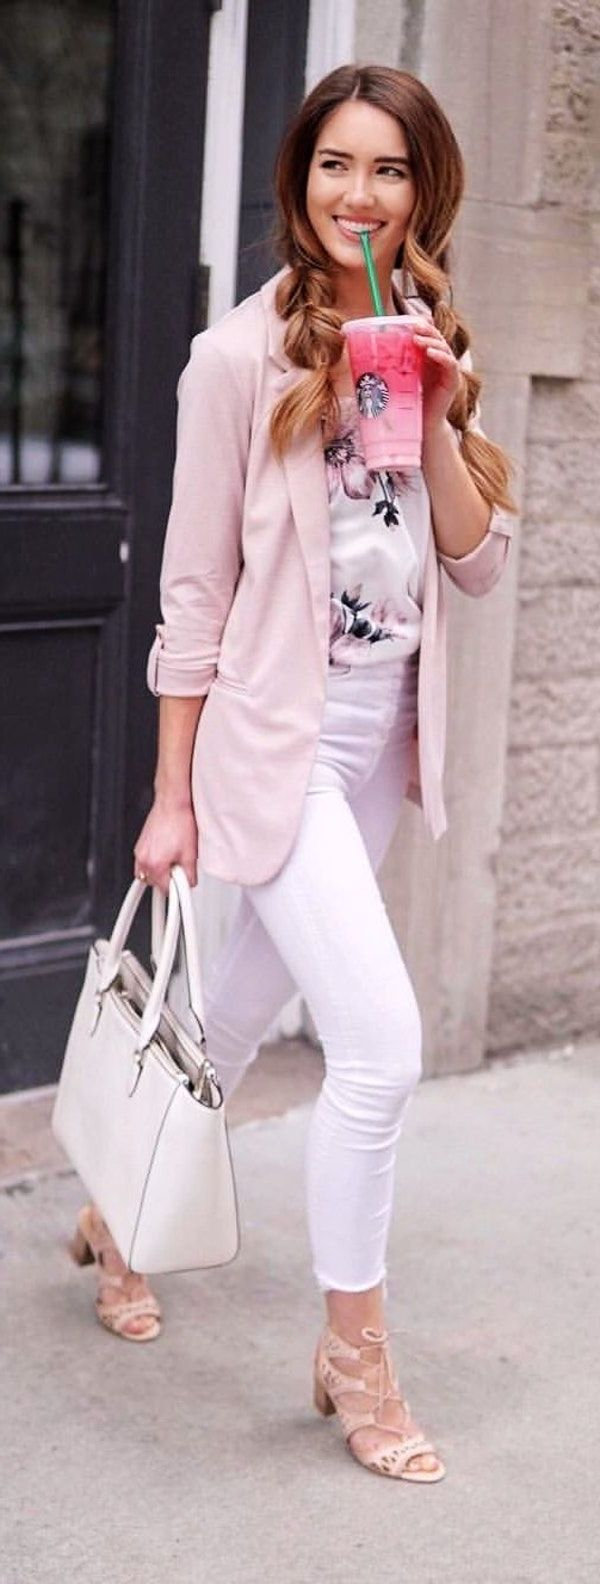 Women White Pants Street Style Looks 2021 - FashionMakesTrends.com